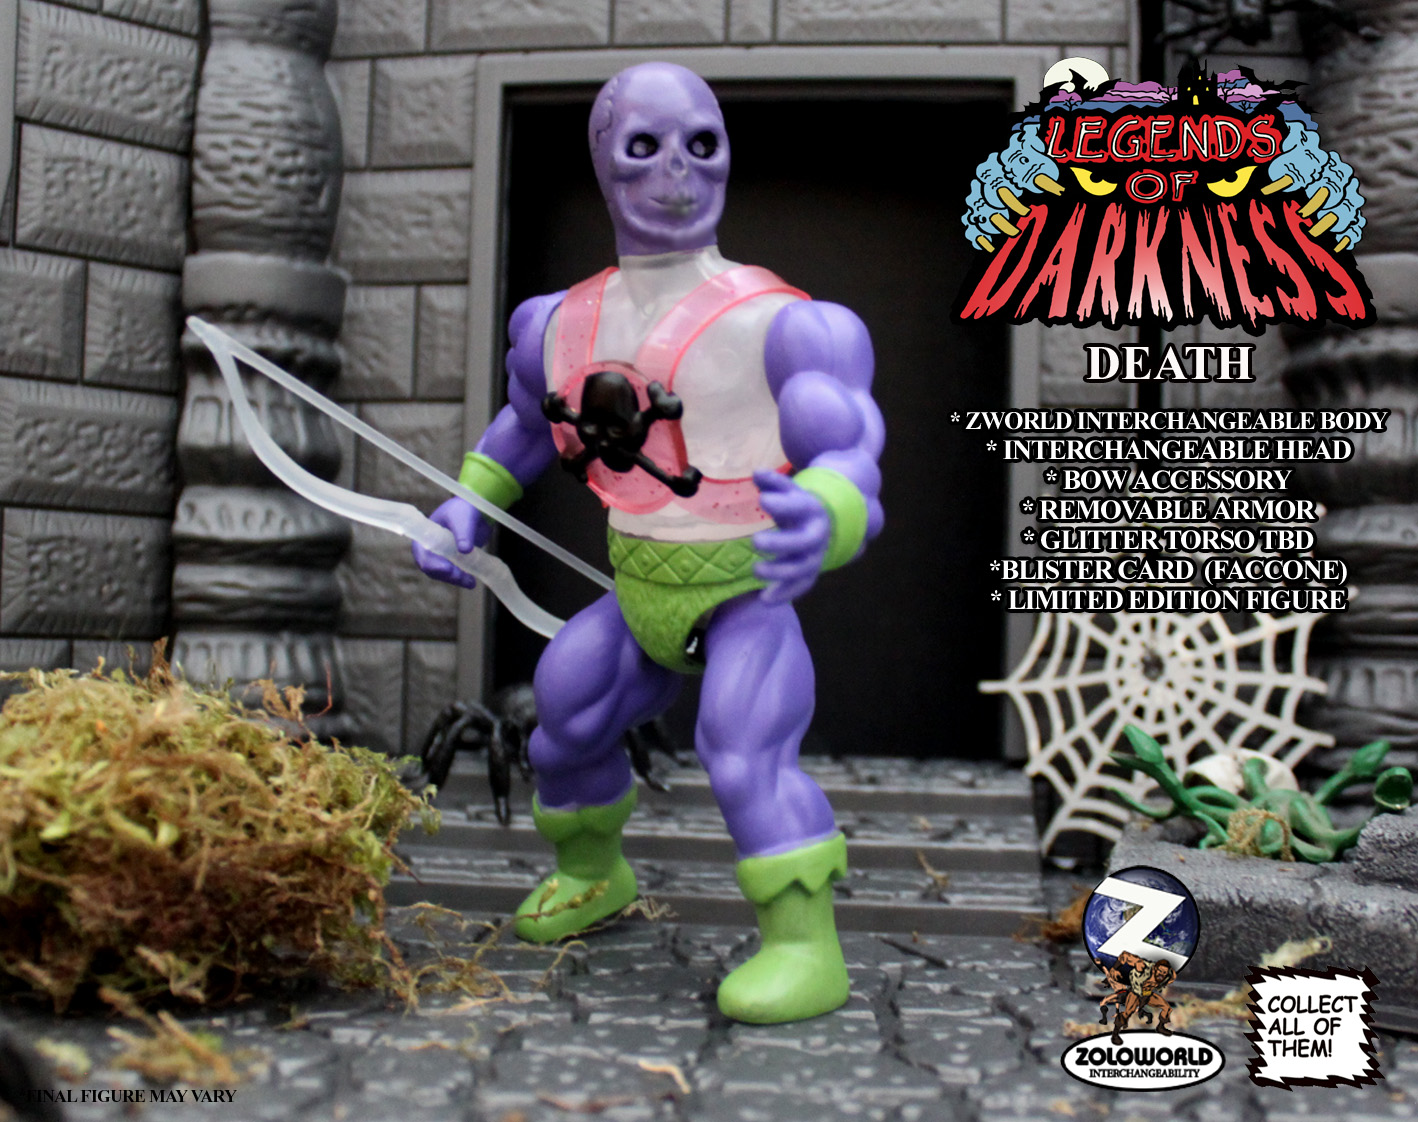 LEGENDS OF DARKNESS DEATH MONSTER FIGURE - Click Image to Close